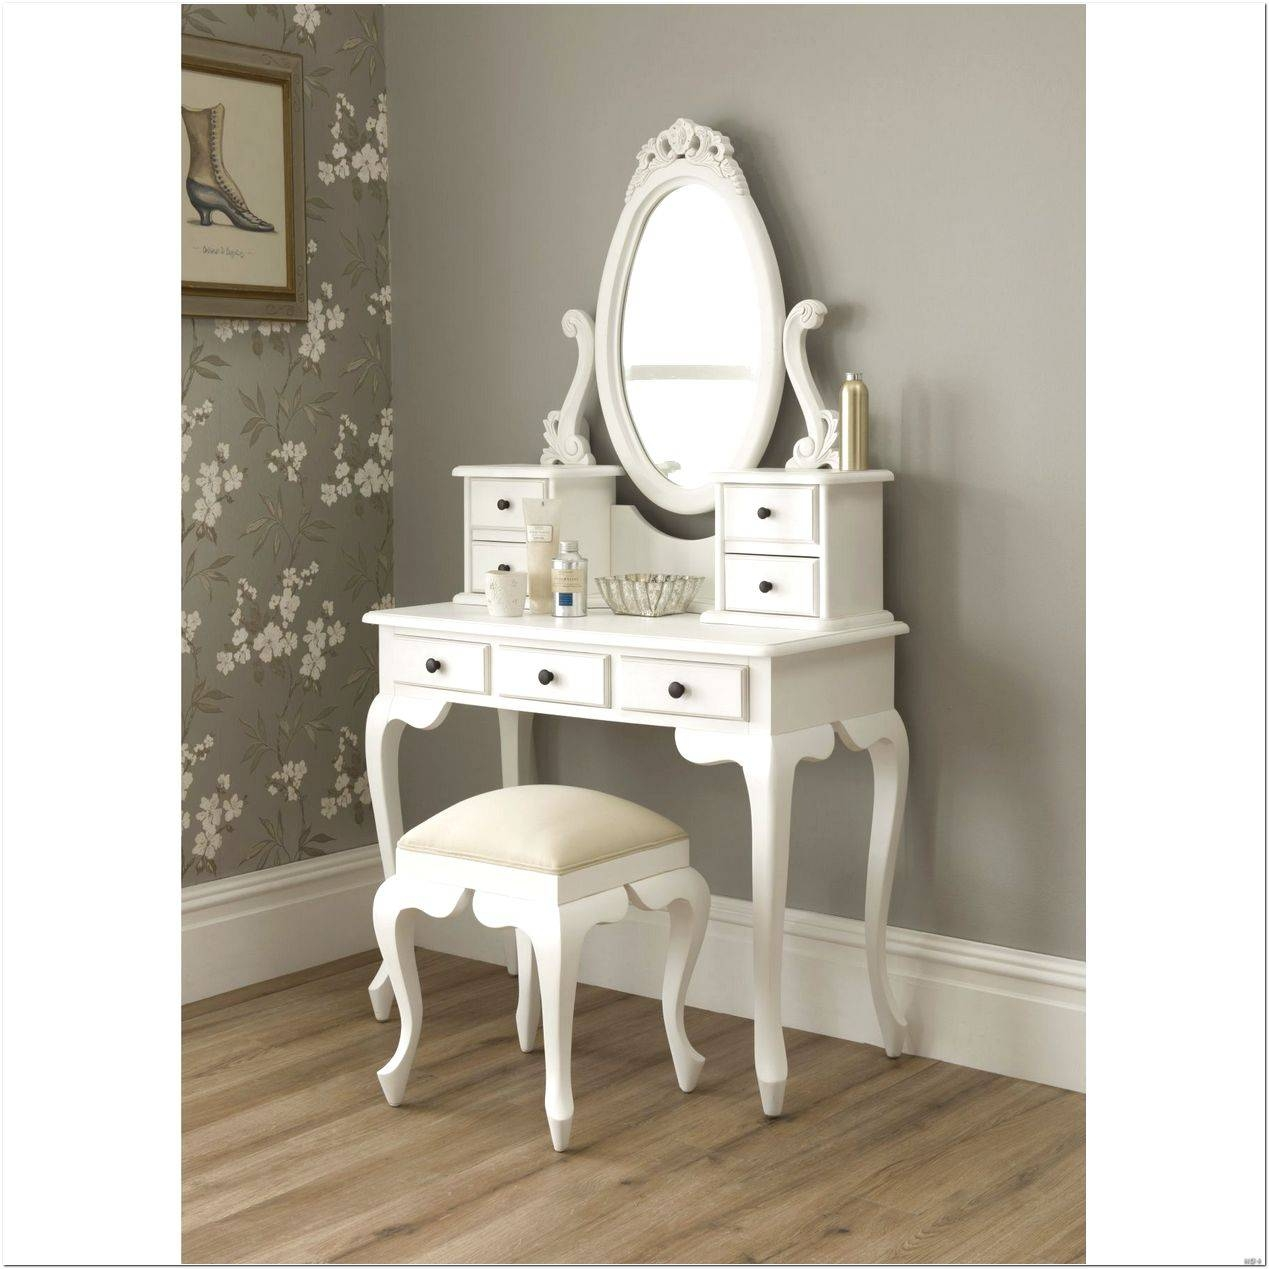 French Style Dressing Table Mirror Design Ideas - Interior Design throughout French Style Dressing Table Mirrors (Image 13 of 25)